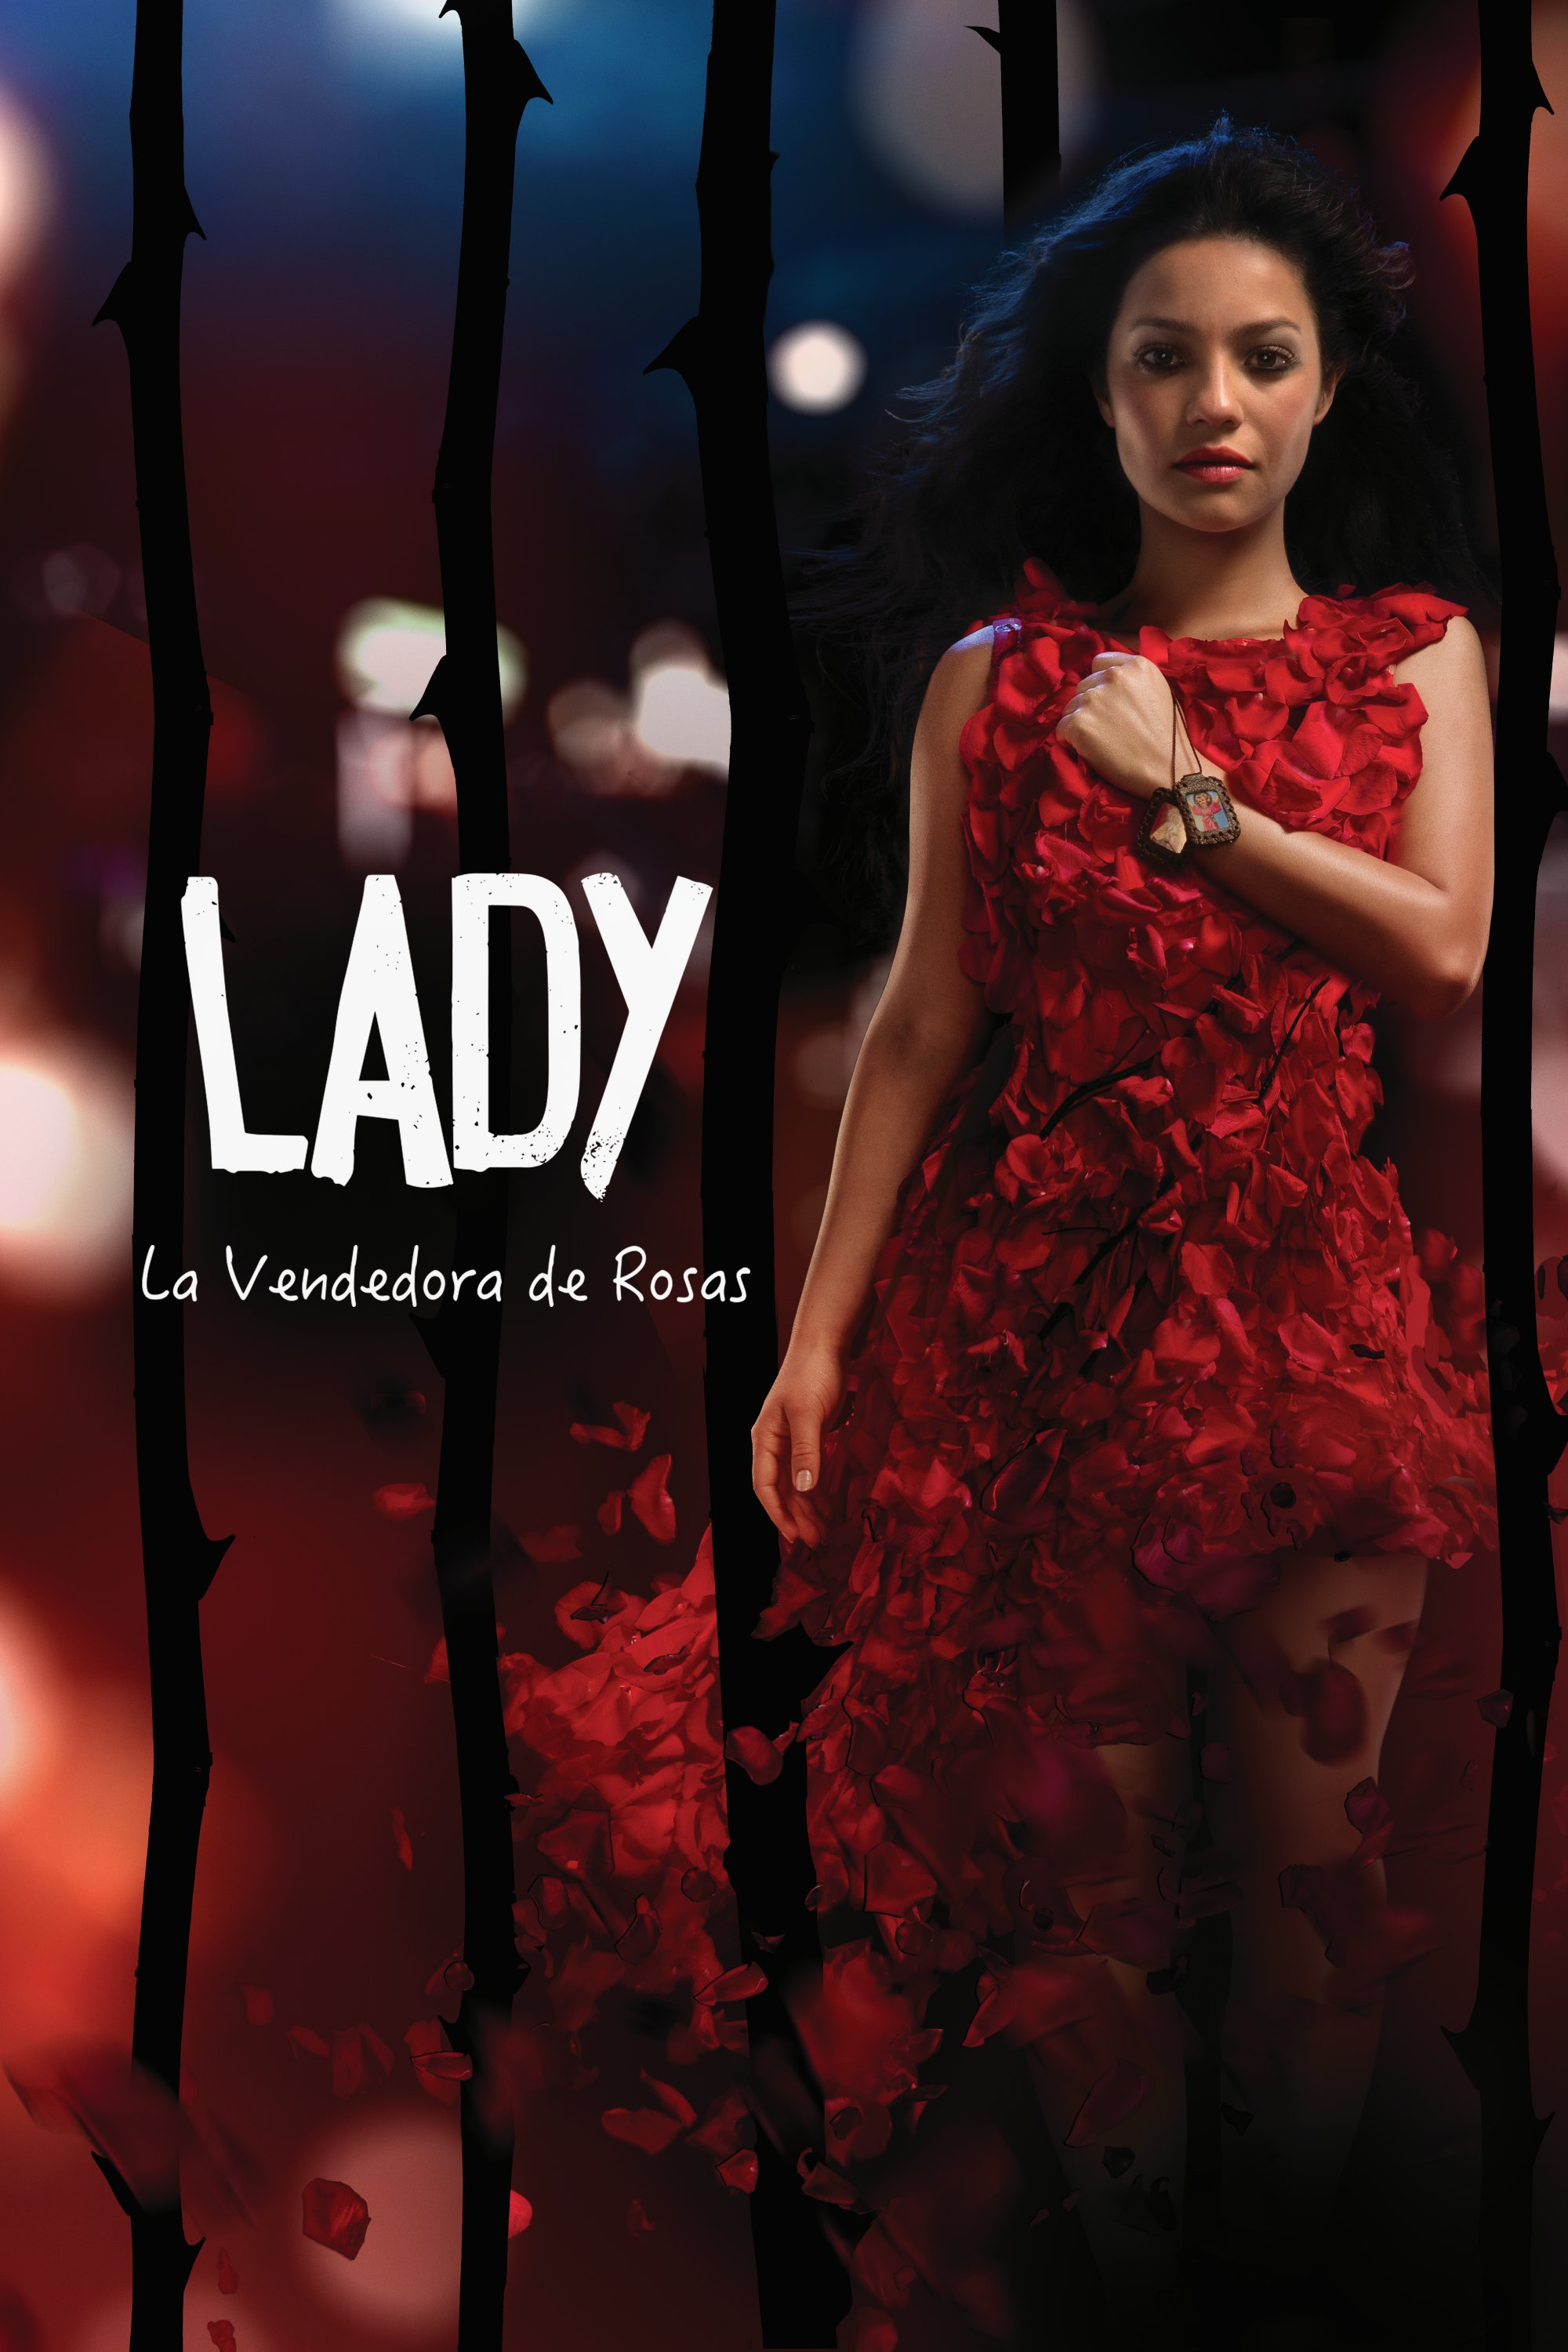 Lady, La Vendedora de Rosas (TV Series 2015– ) - IMDb